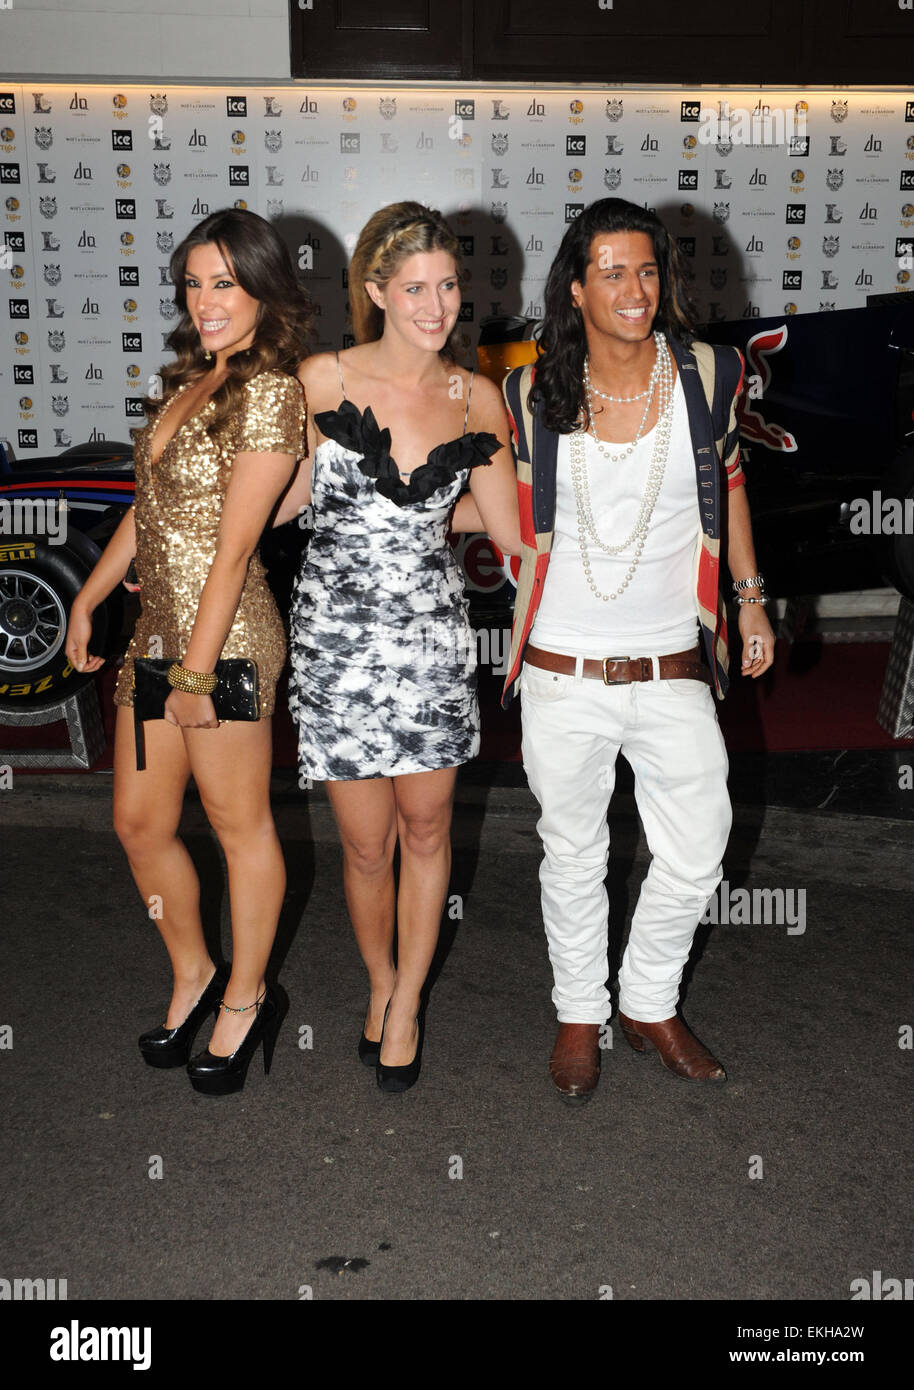 06.JUNE.2011. LONDON  THE TV REALITY SERIES MADE IN CHELSEA STARS GABRIELLA ELLIS, FRANCESCA HULL AND OLLIE LOCKE - Stock Image